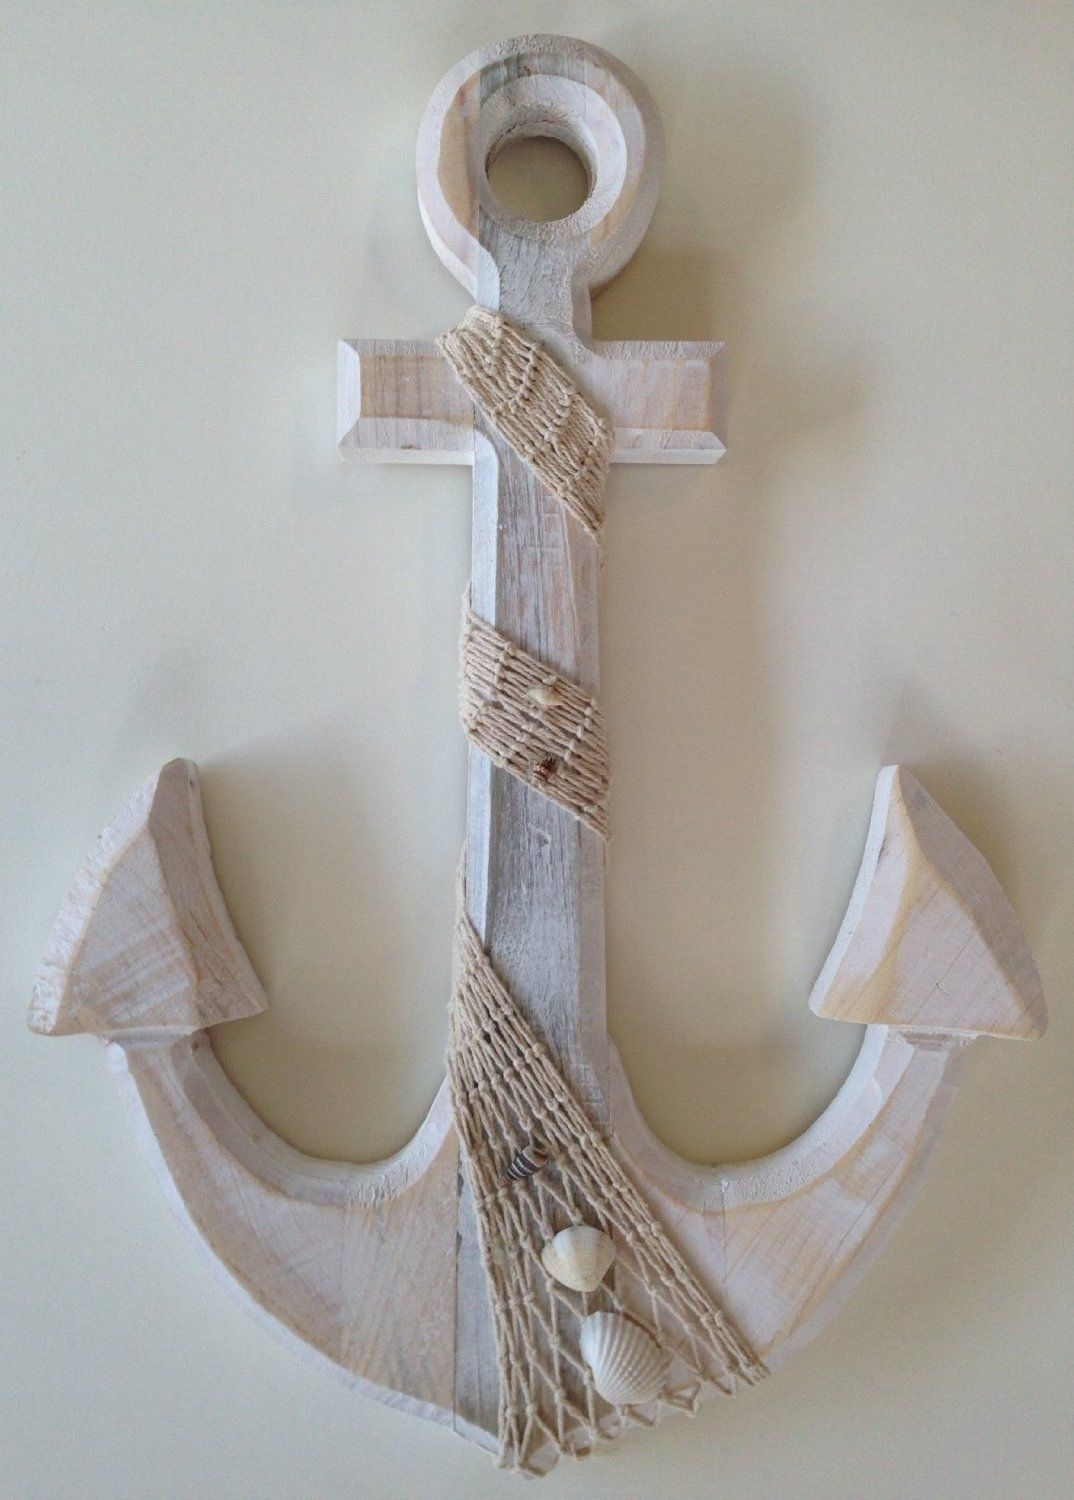 Amazon  Large Anchor Wall Plaque   Nautical Theme Bathroom Nautical Bathroom Decor Wood